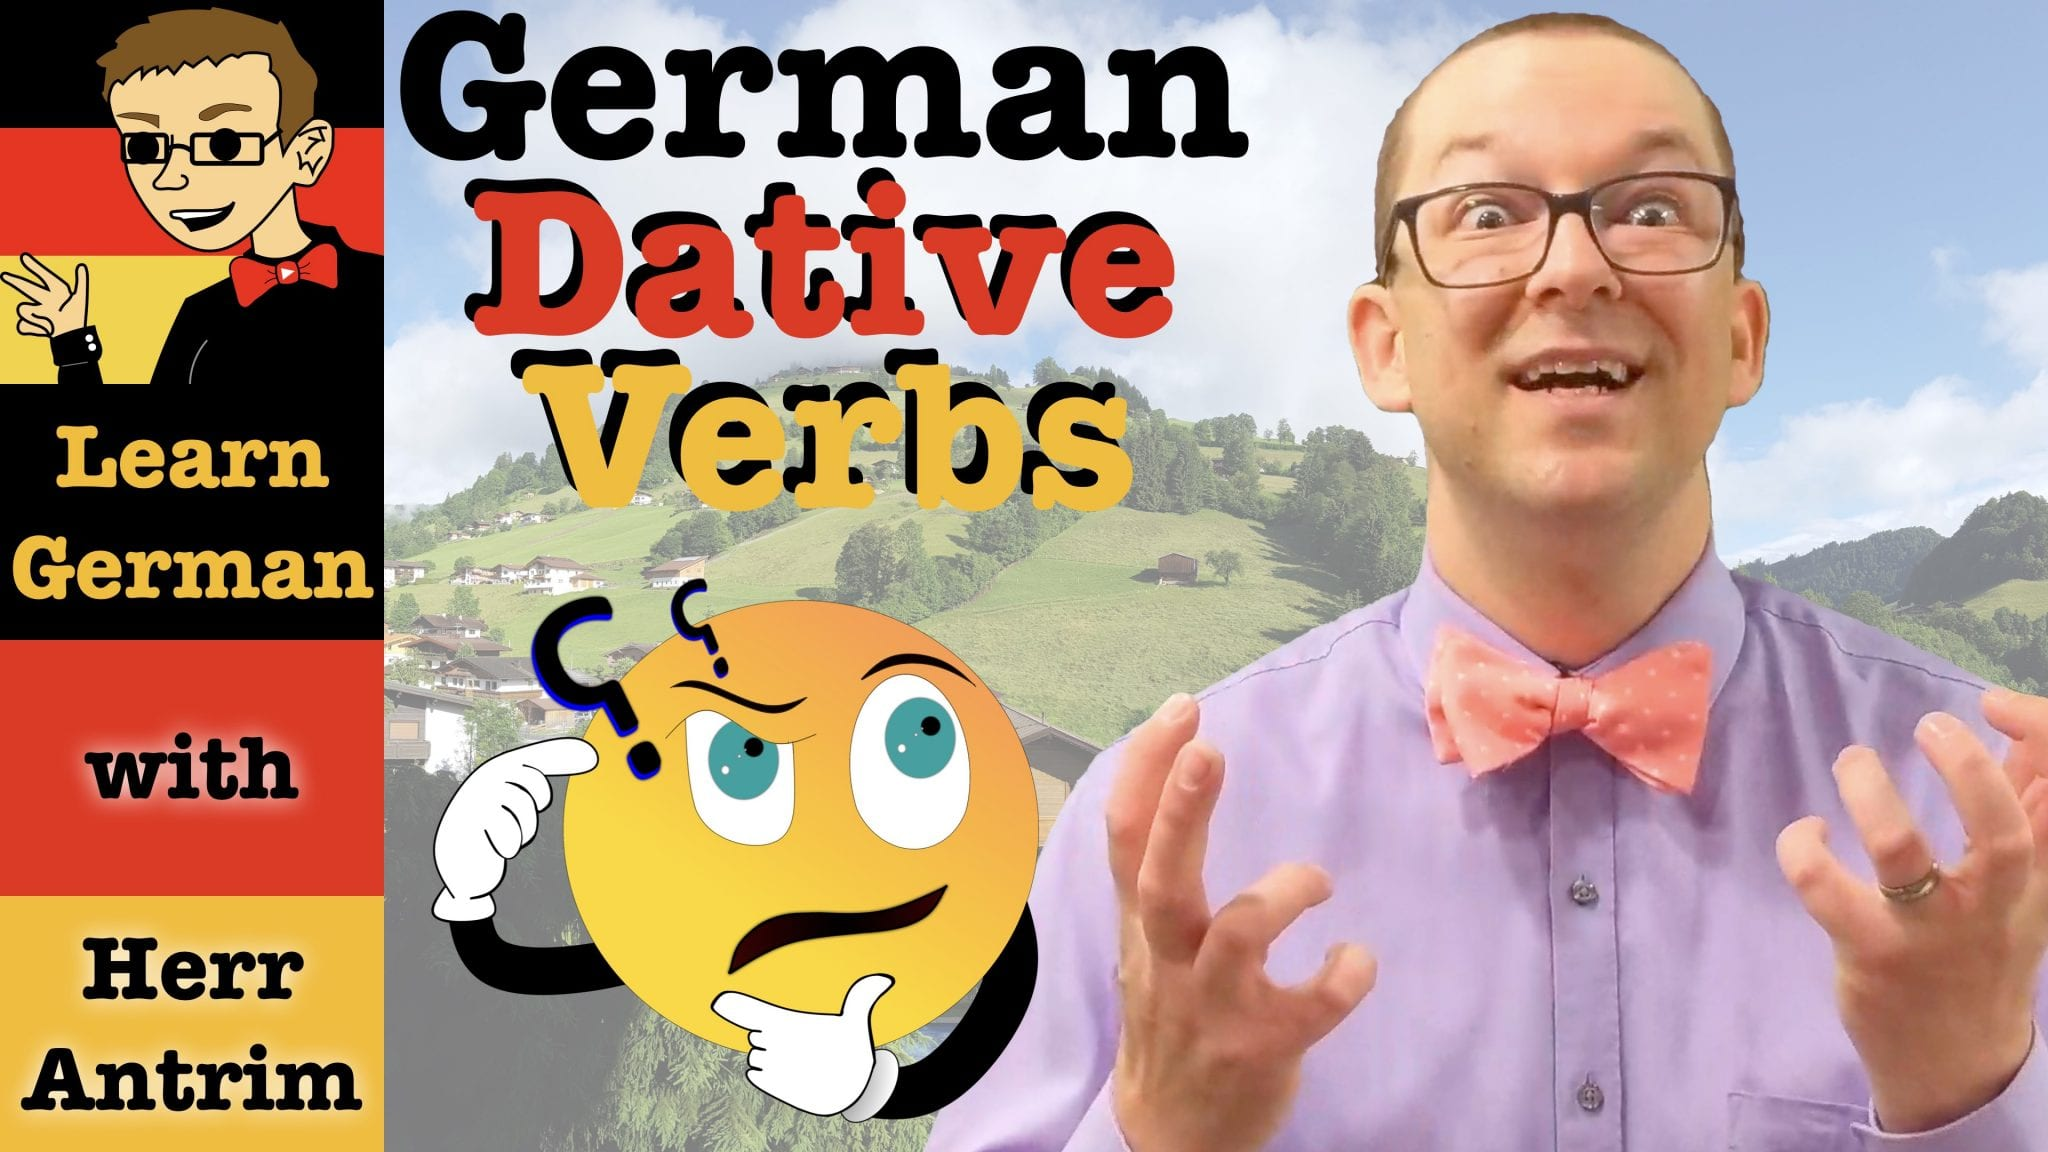 German Dative Verbs with Examples